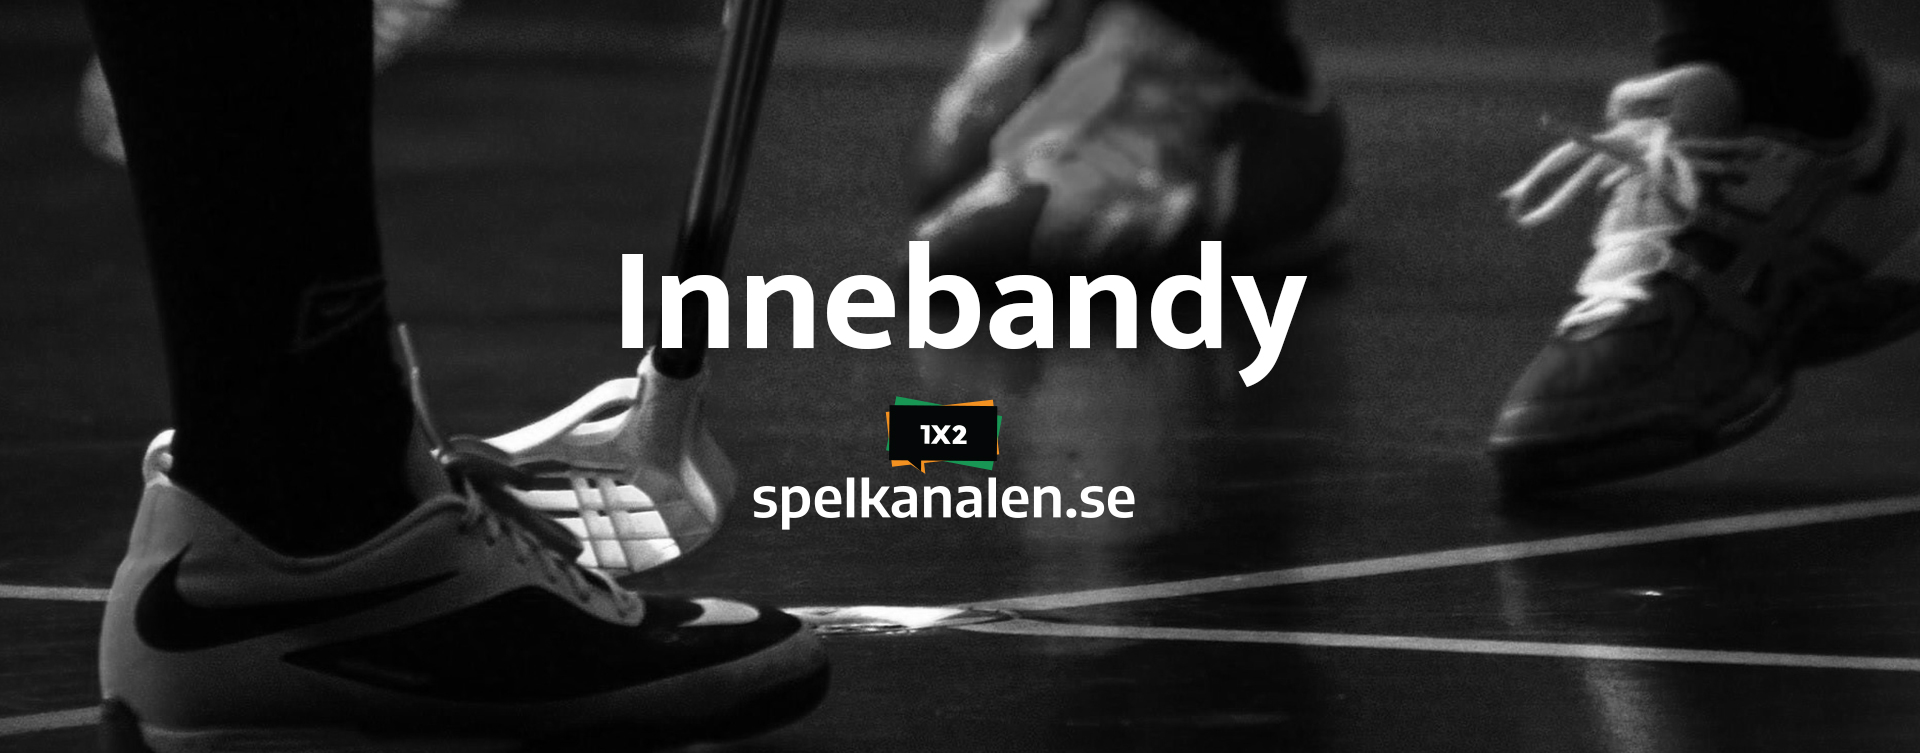 Innebandy betting tips signal binary options that are free